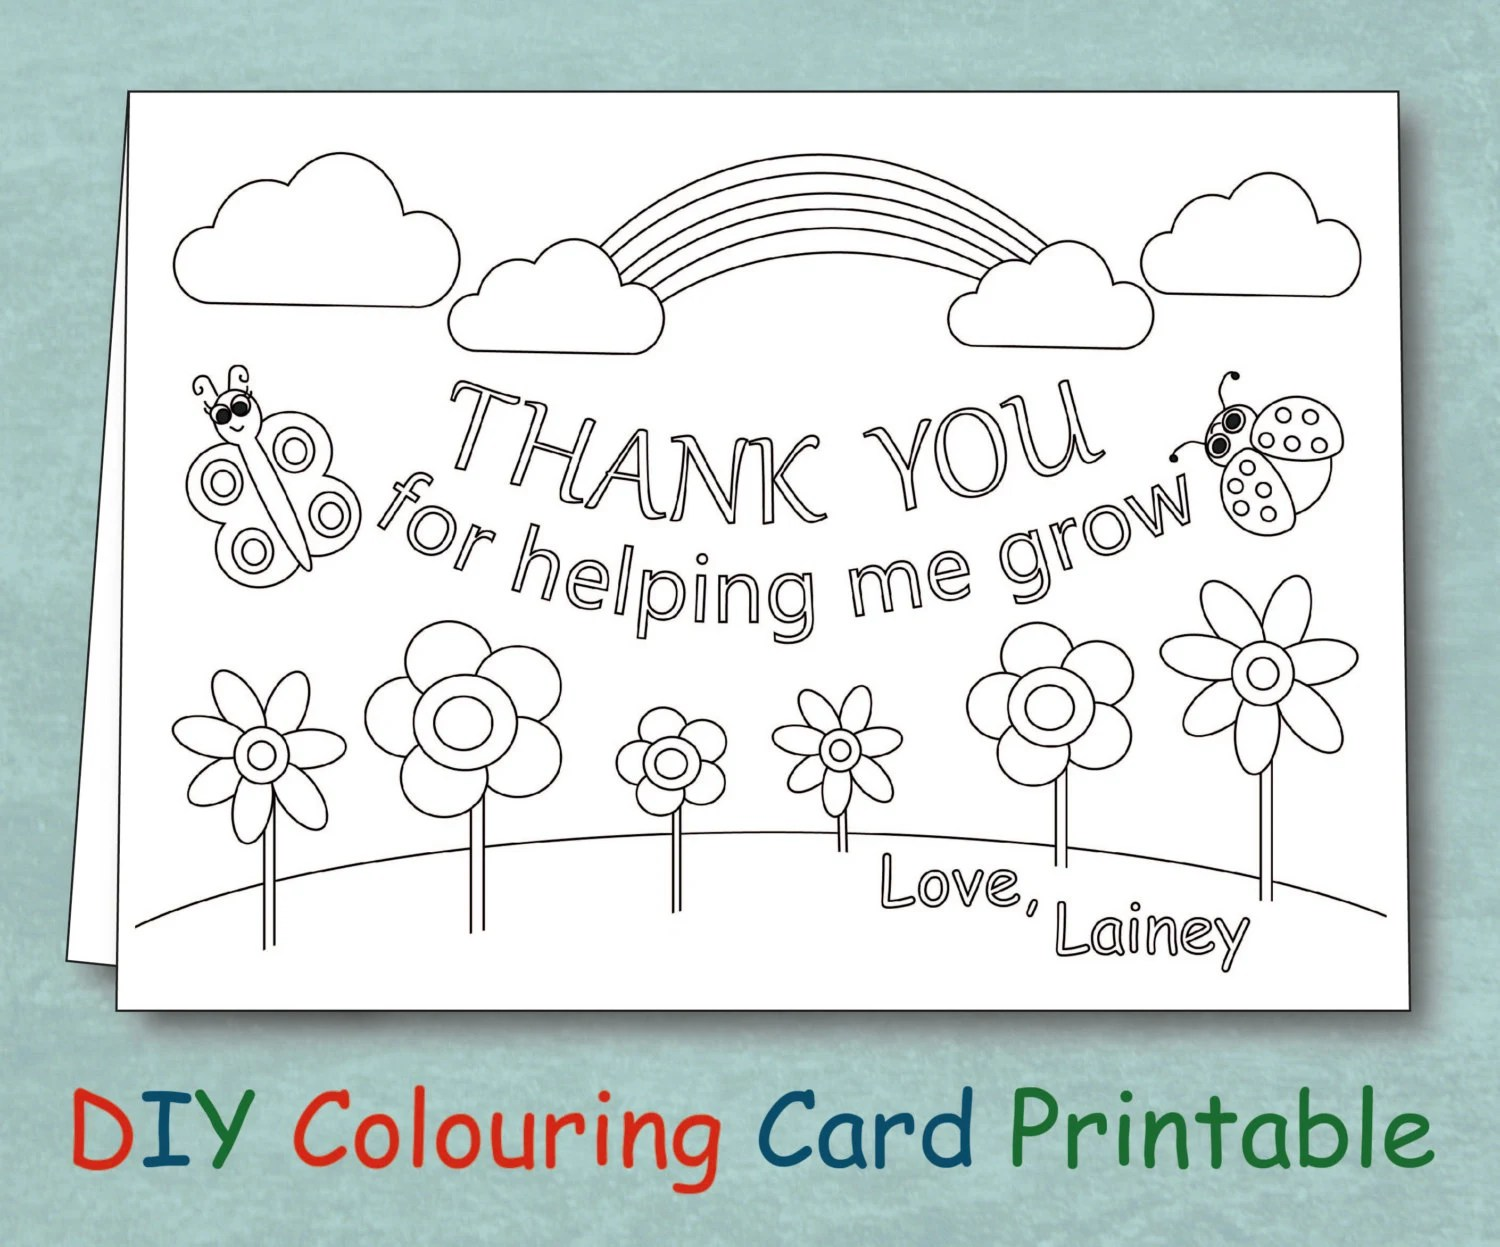 Personalized Coloring Teacher Thank You Card Printable